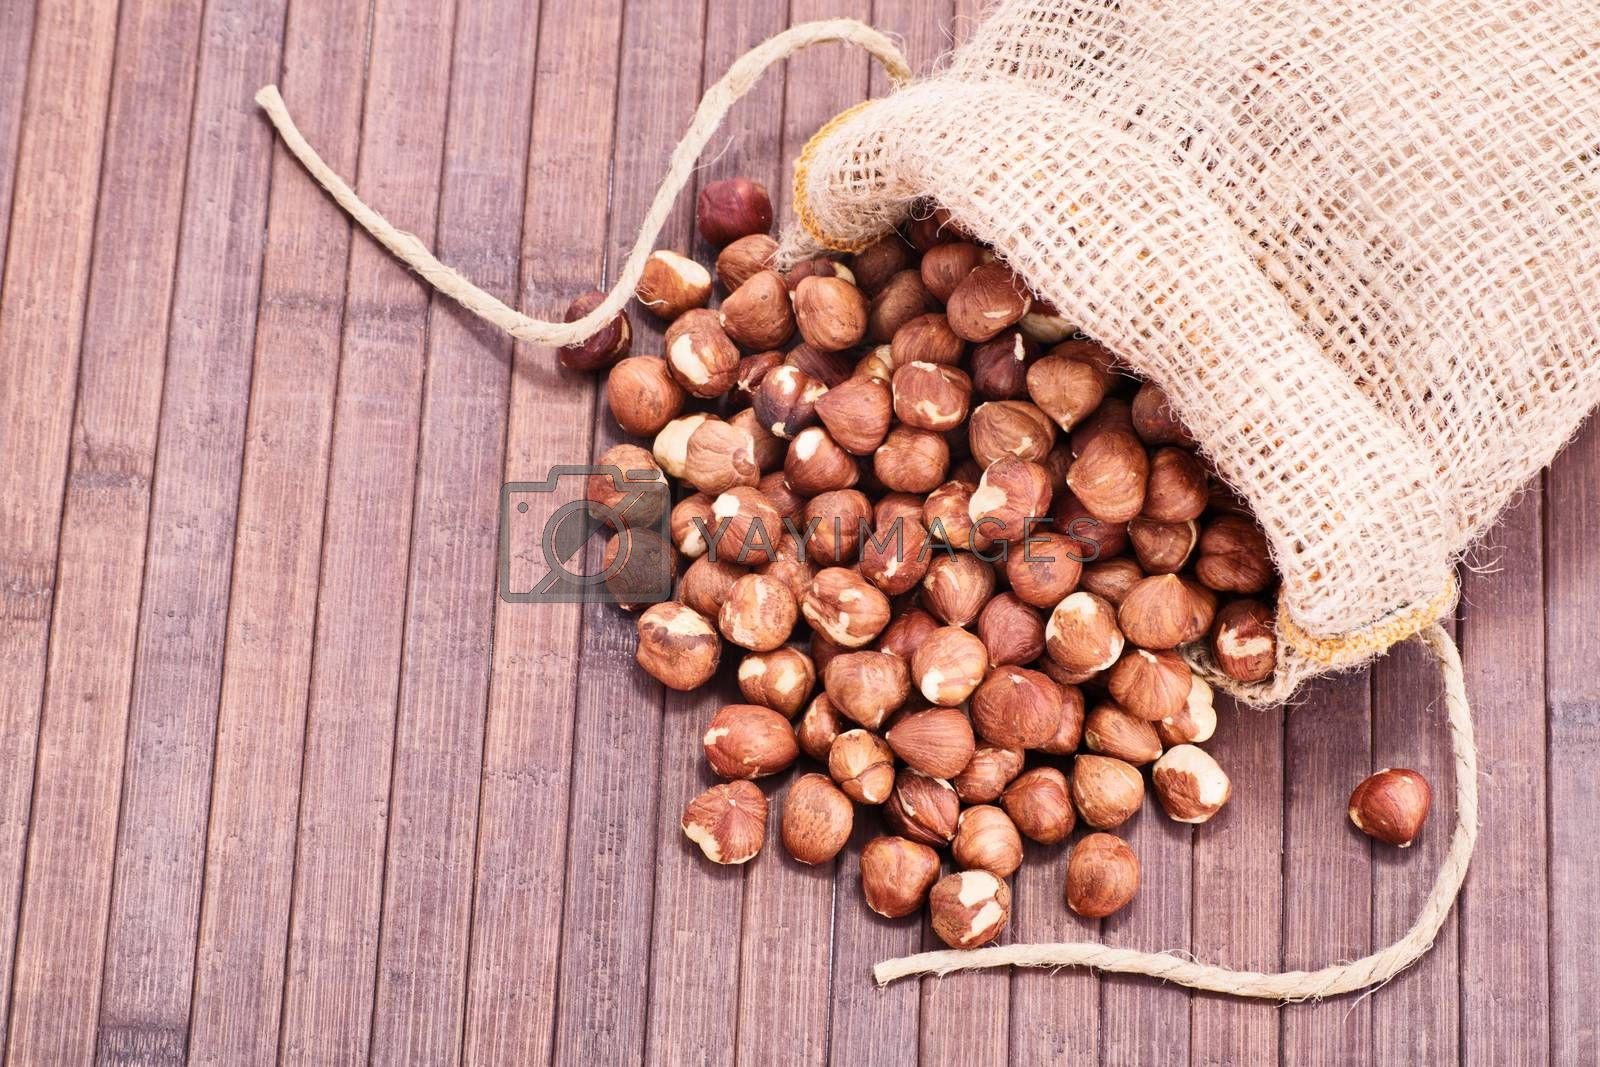 Close up shot of hazelnuts in a burlap sack spilled on wooden background.